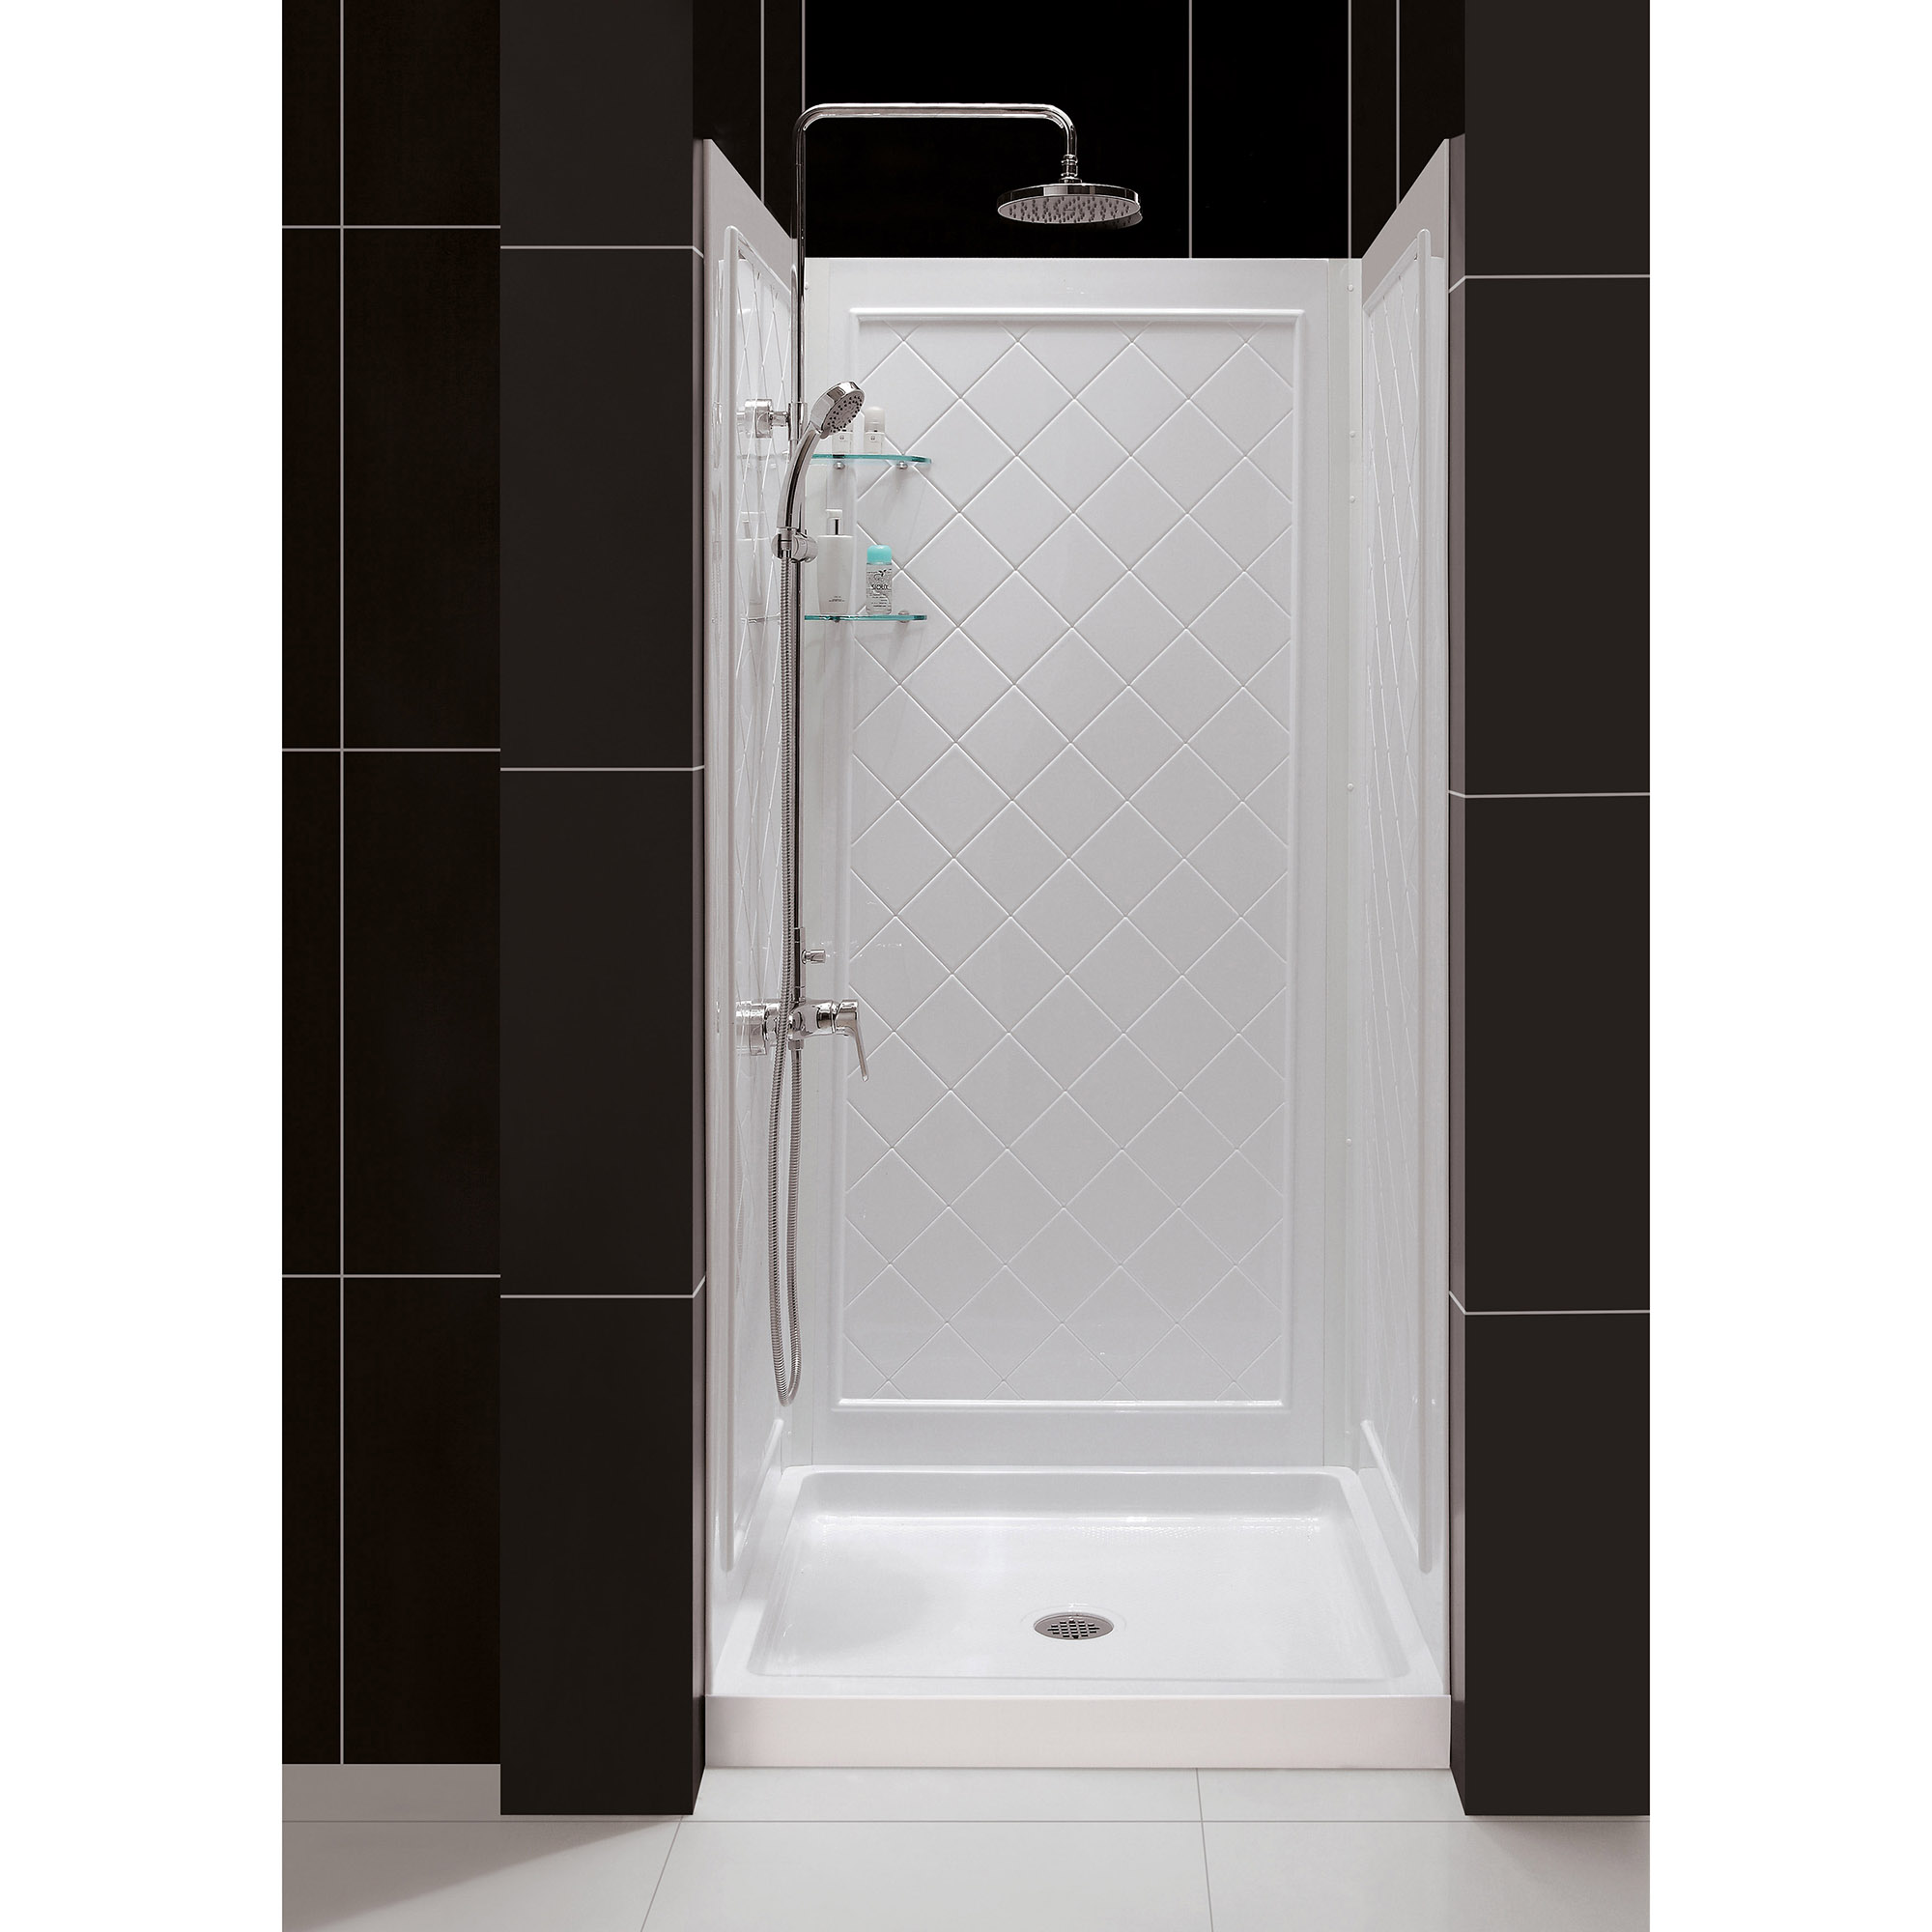 DreamLine 32 in. D x 32 in. W x 76 3/4 in. H Center Drain Acrylic Shower Base and QWALL-5 Backwall Kit In White